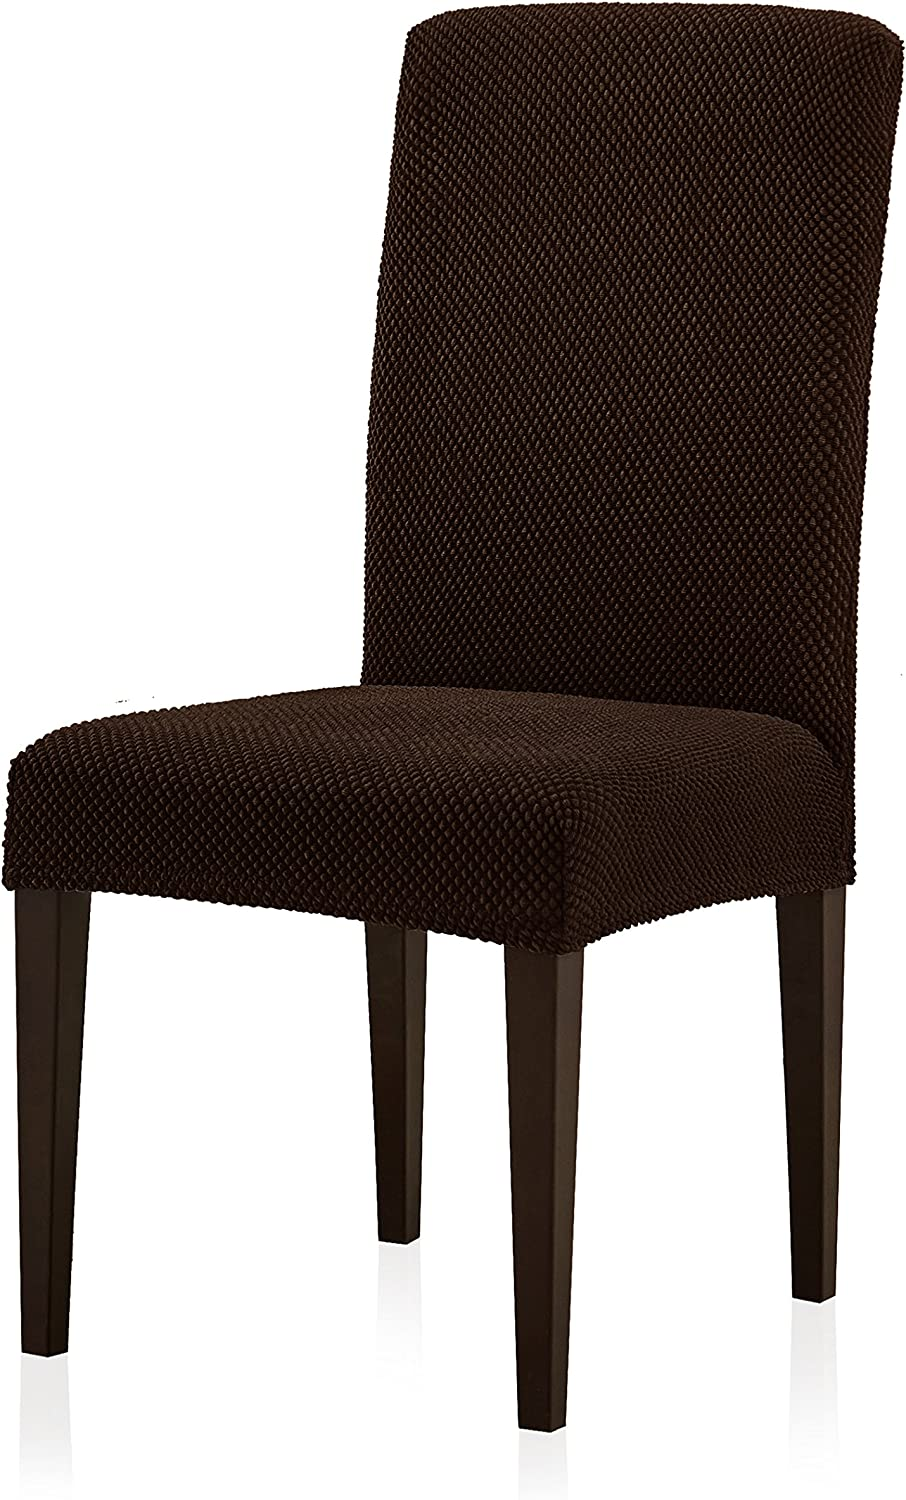 Subrtex Jacquard Dining Room Chair Slipcovers Sets Stretch Furniture Protector Covers for Armchair Removable Washable Elastic Parsons Seat Case for Restaurant Hotel Ceremony (4, Chocolate)